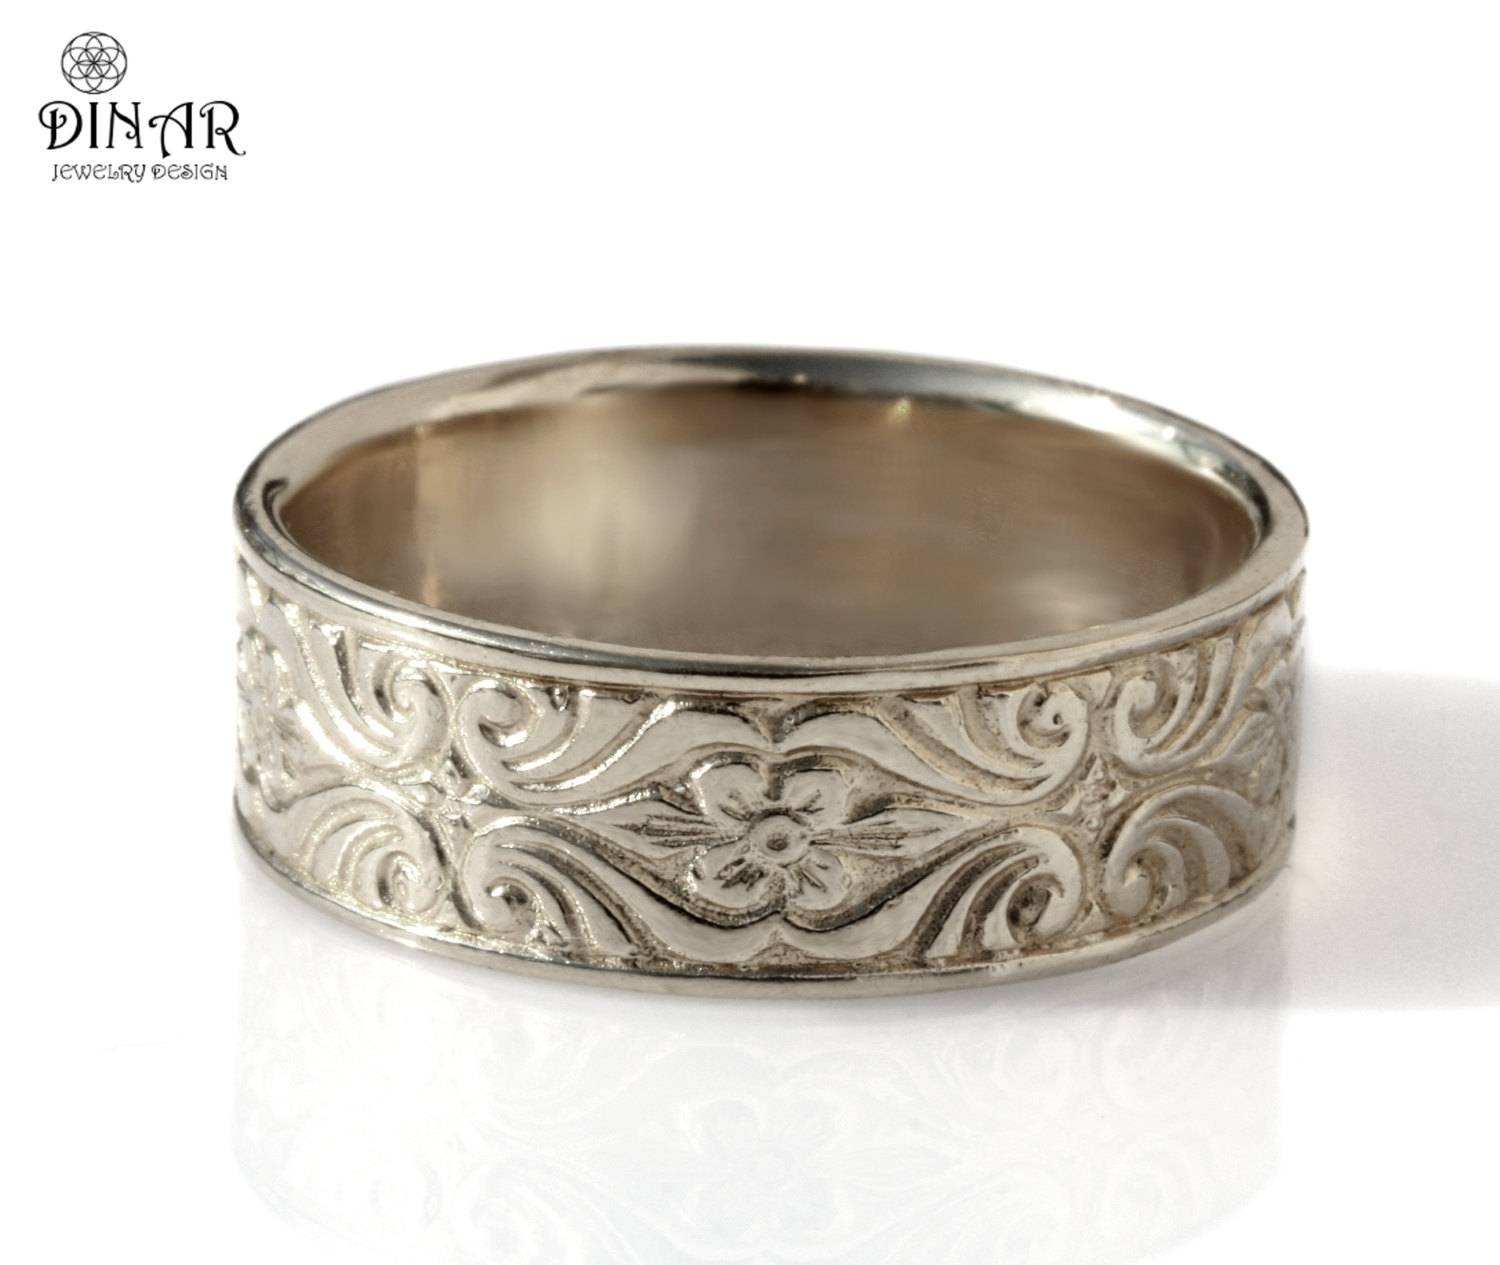 14K White Gold Wedding Band Engraved Scrolls Leaf Men Intended For Antique Men's Wedding Bands (View 1 of 15)